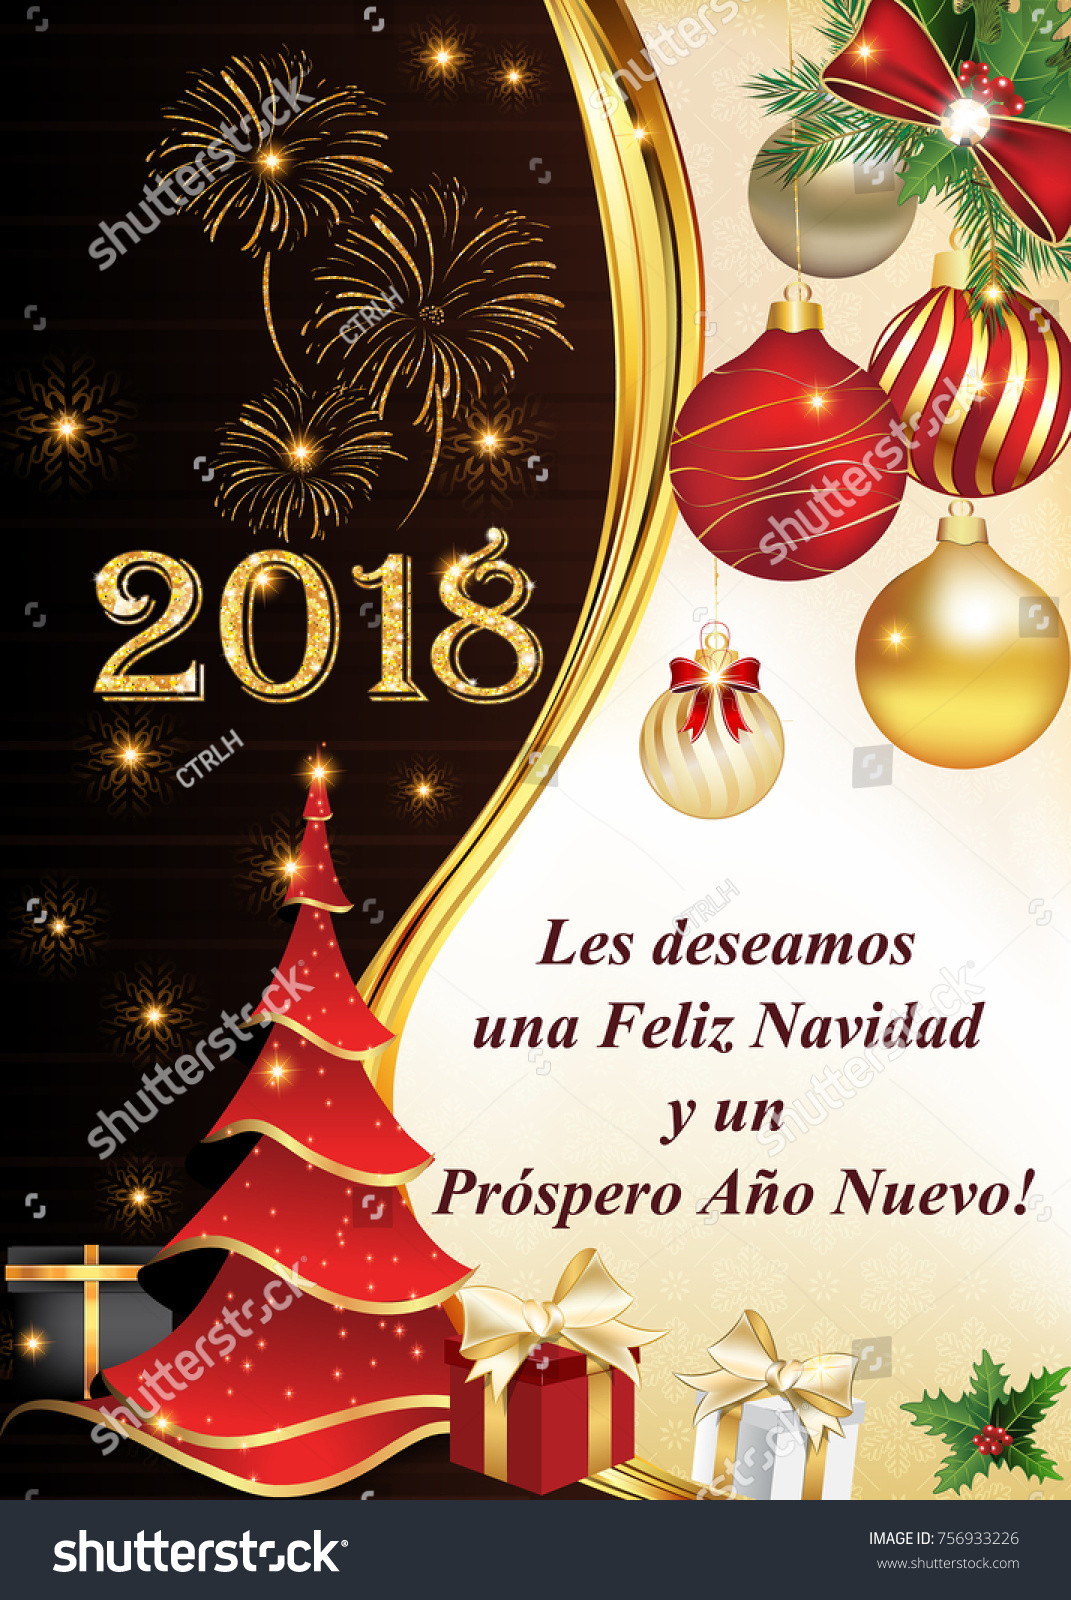 2018 christmas new year greeting text stock illustration royalty 2018 christmas new year greeting with text in spanish we wish you a merry m4hsunfo